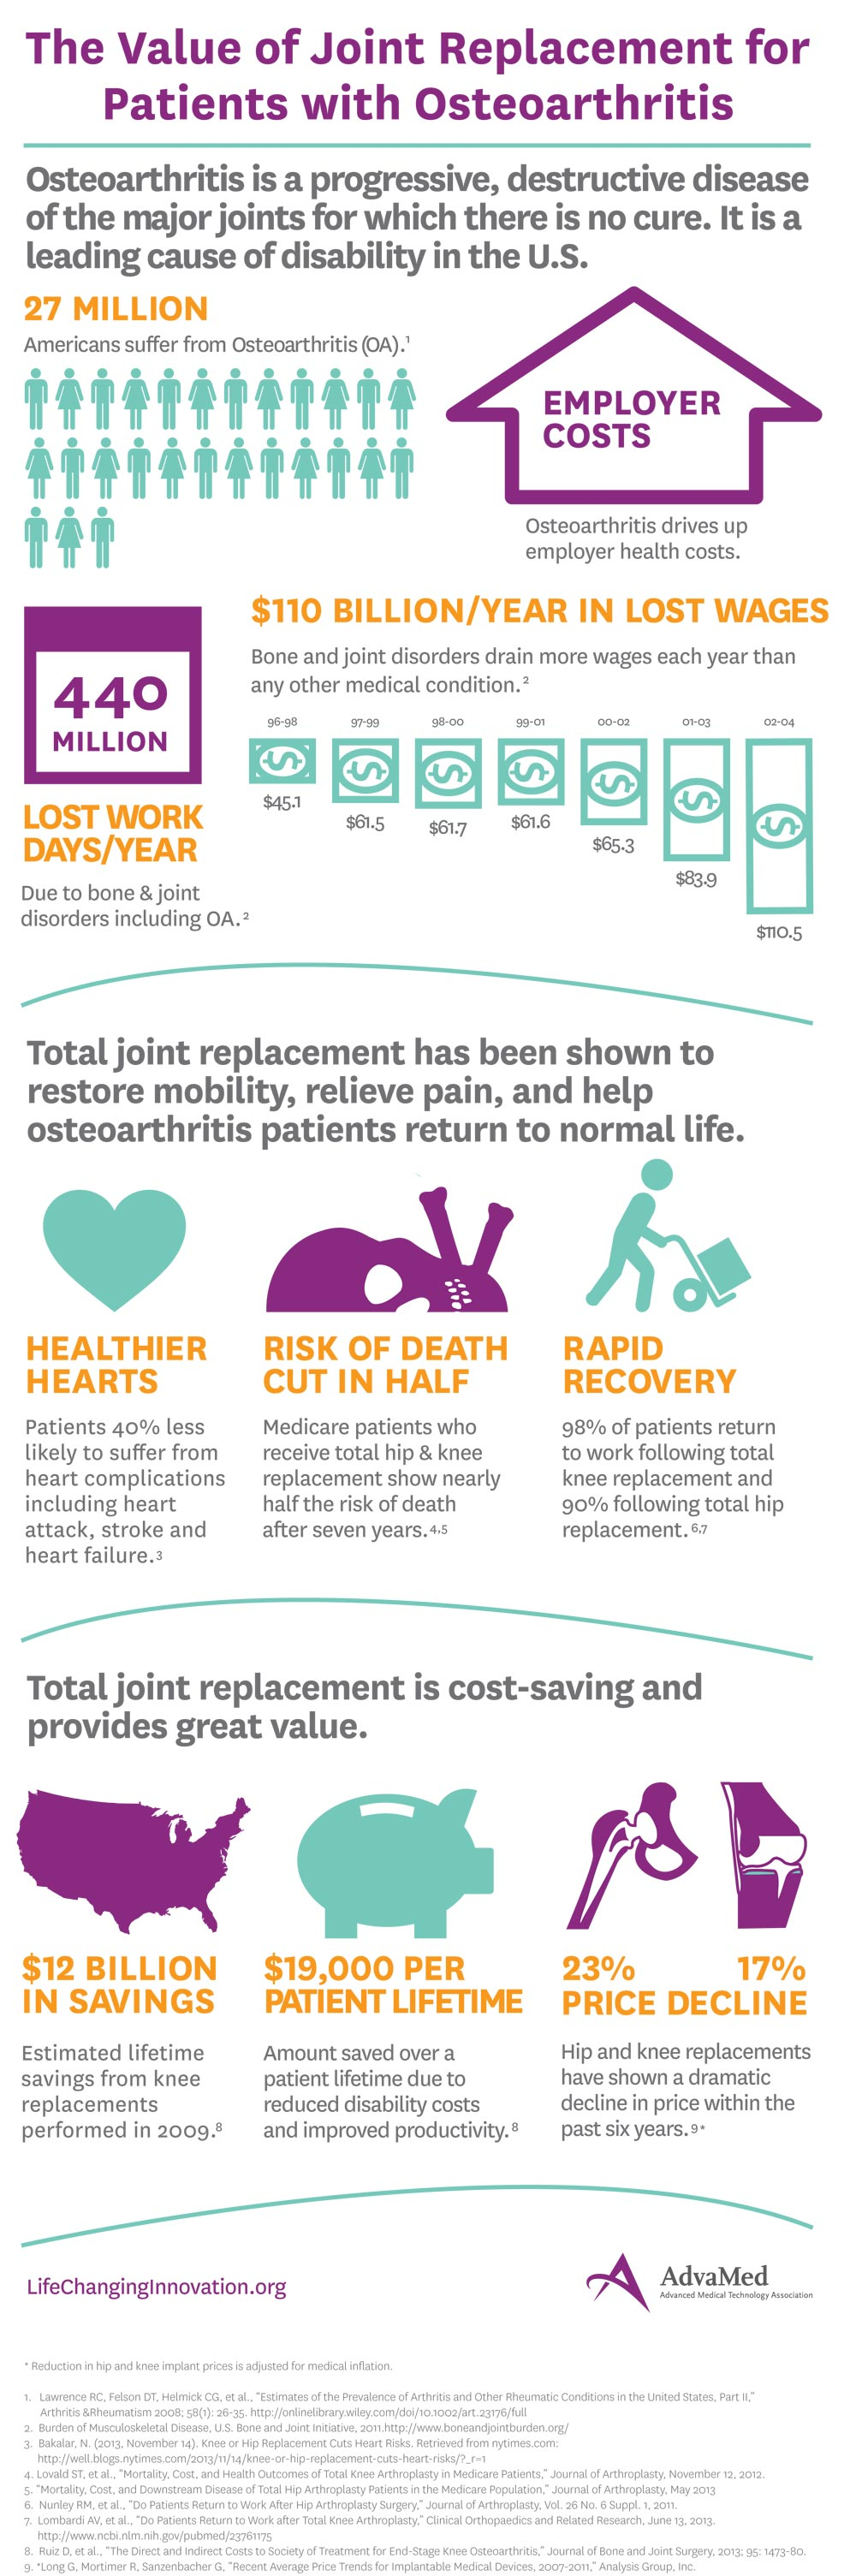 Value_of_Joint_Replacement_Infographic_FINAL